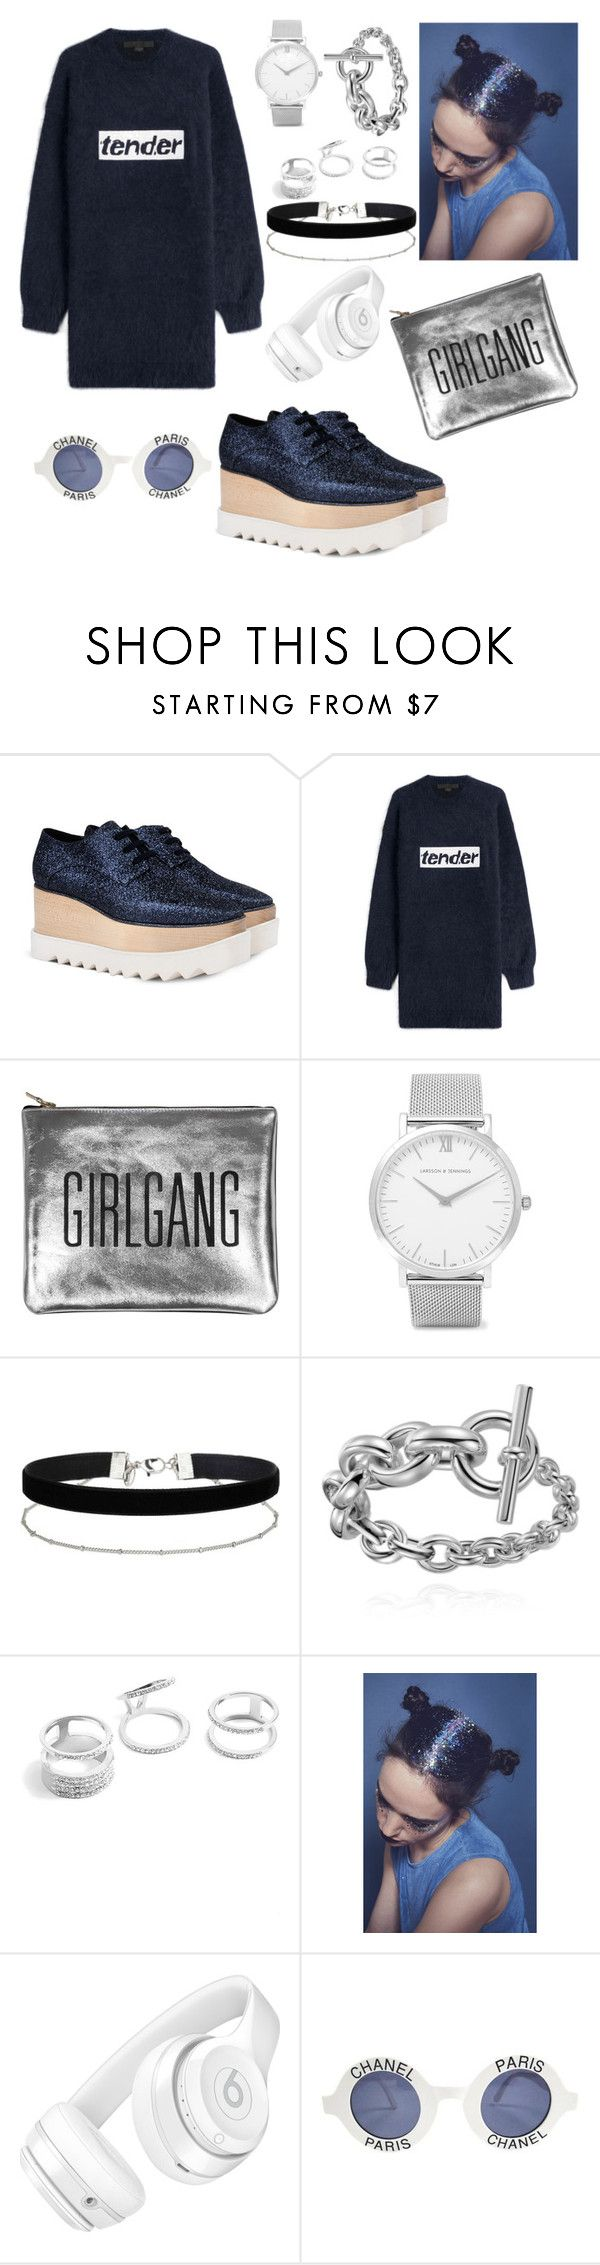 """""""🖤"""" by lwchiz ❤ liked on Polyvore featuring STELLA McCARTNEY, Alexander Wang, Sarah Baily, Larsson & Jennings, Miss Selfridge, GUESS, Beats by Dr. Dre and Chanel"""